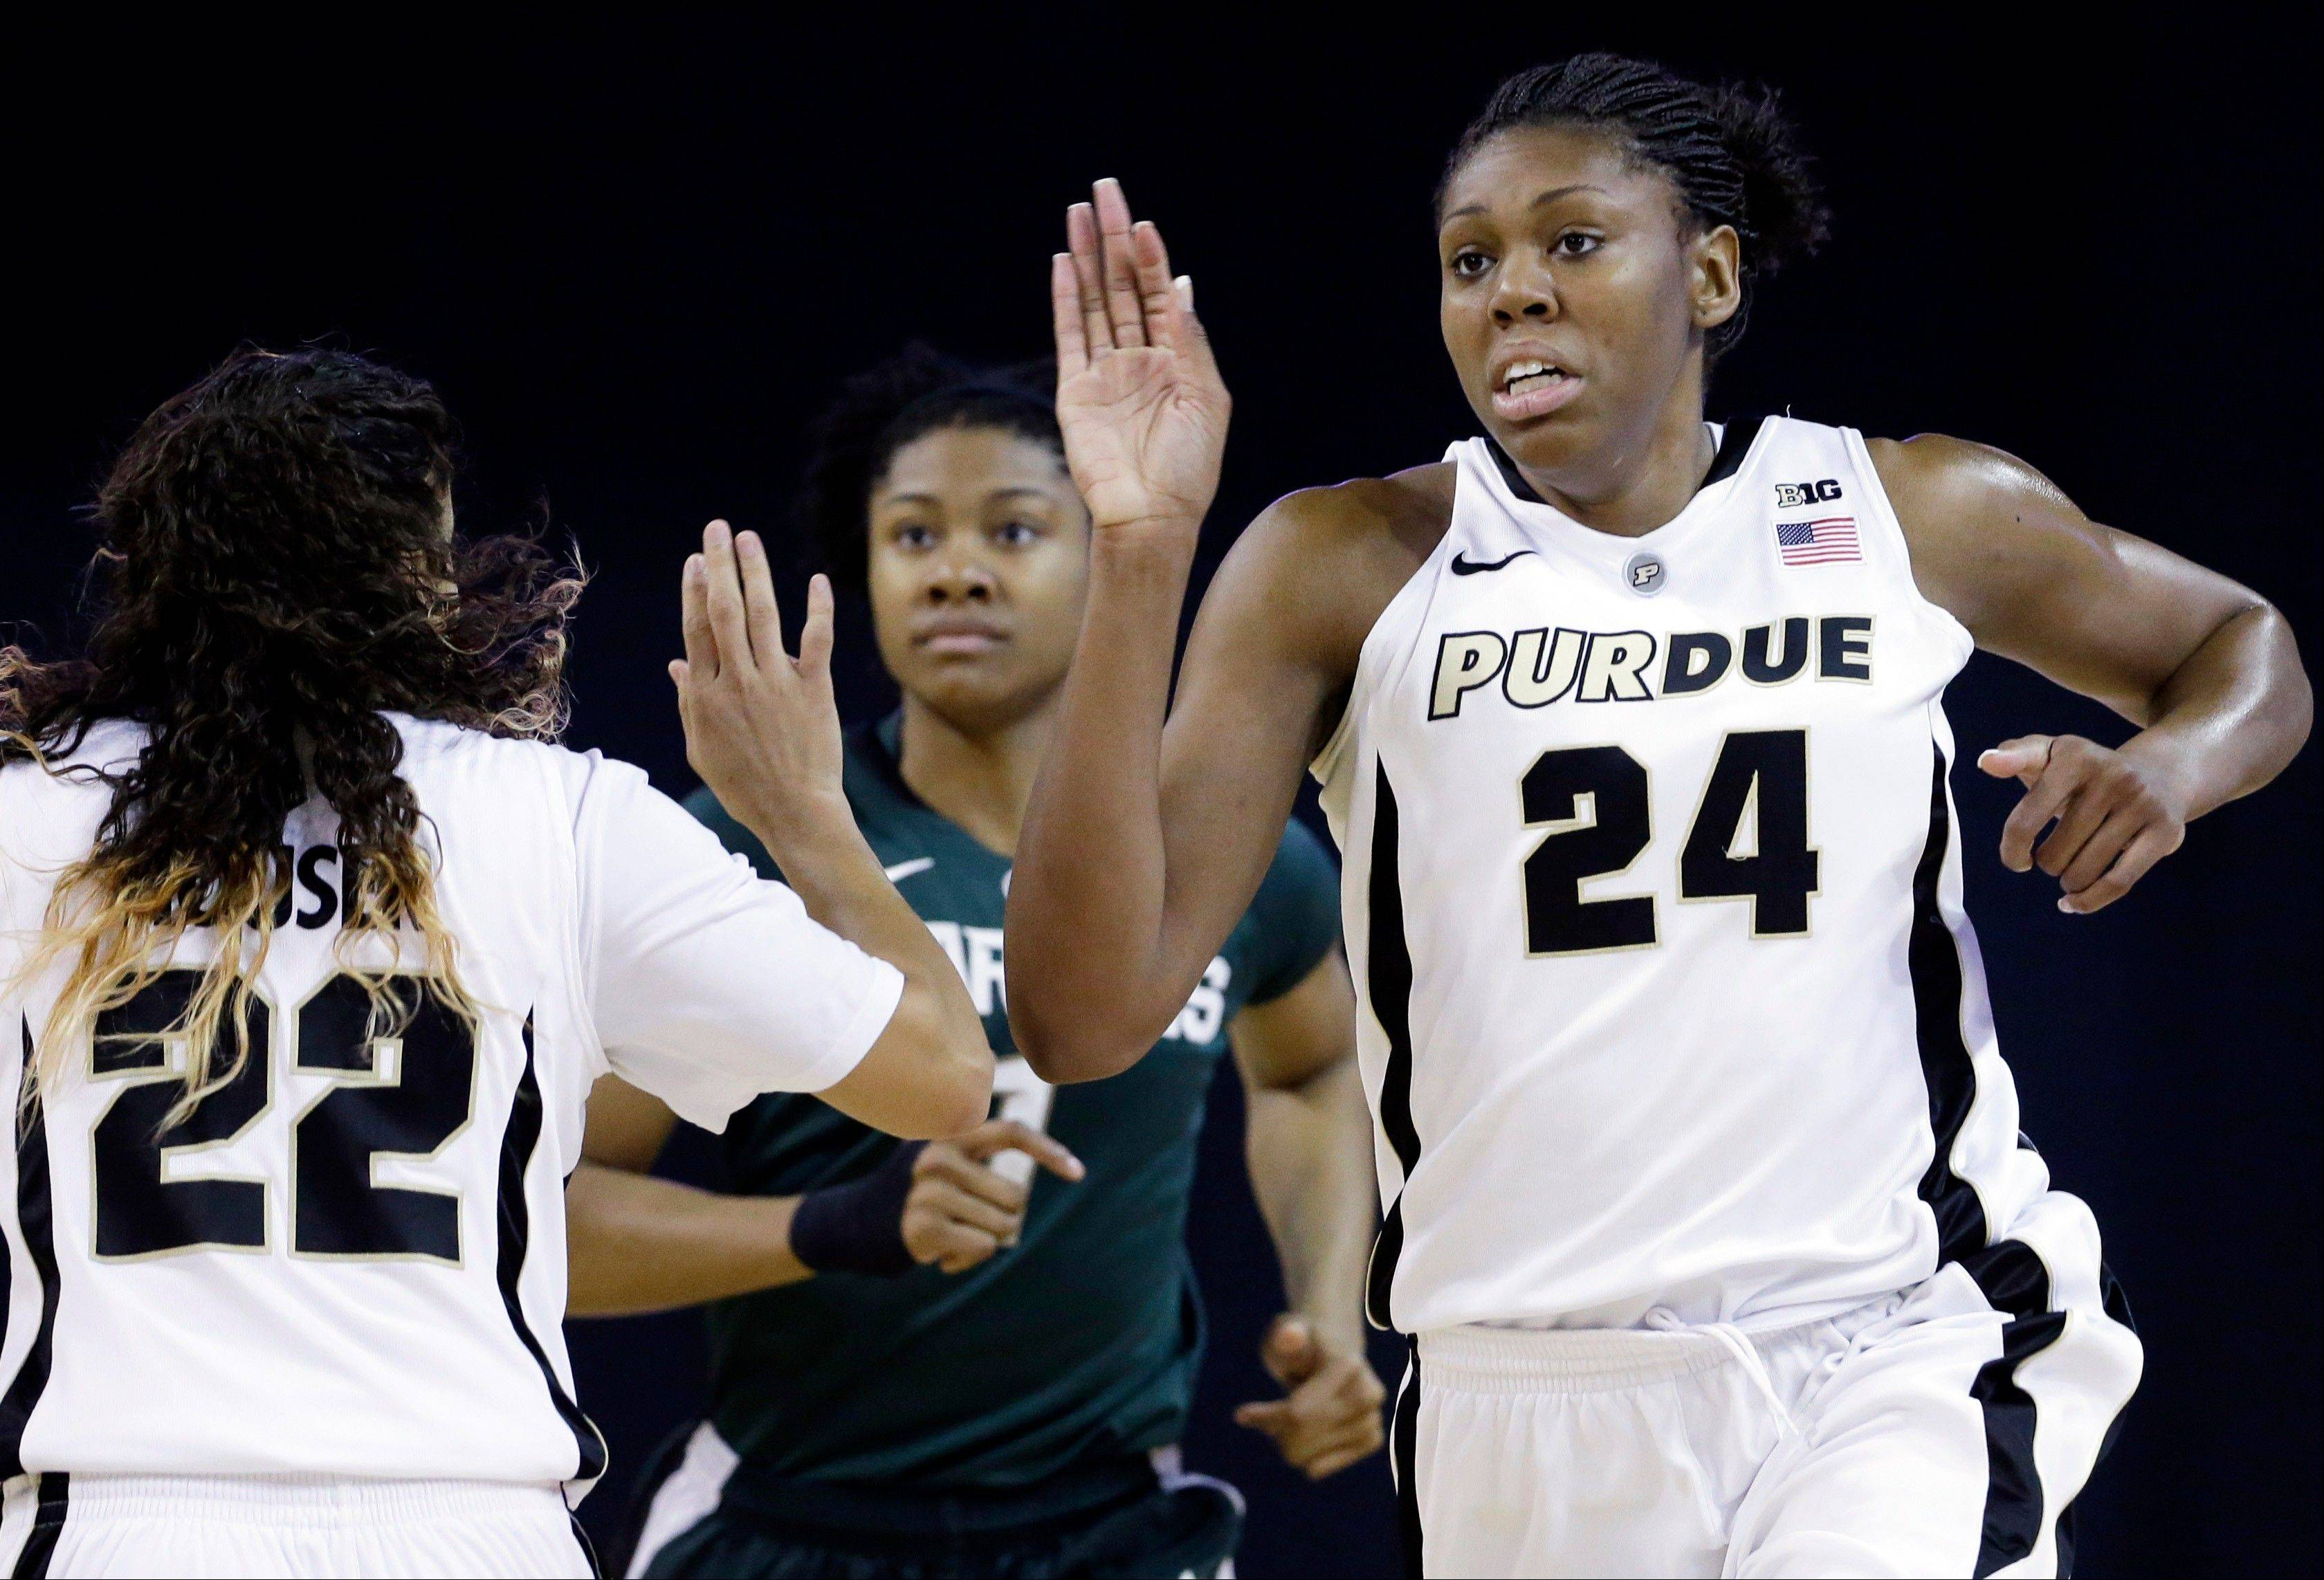 Purdue forward Drey Mingo, right, celebrates with guard KK Houser after scoring a basket during the first half of an NCAA college basketball game against Michigan State in the Big Ten Conference tournament in Hoffman Estates on Sunday.